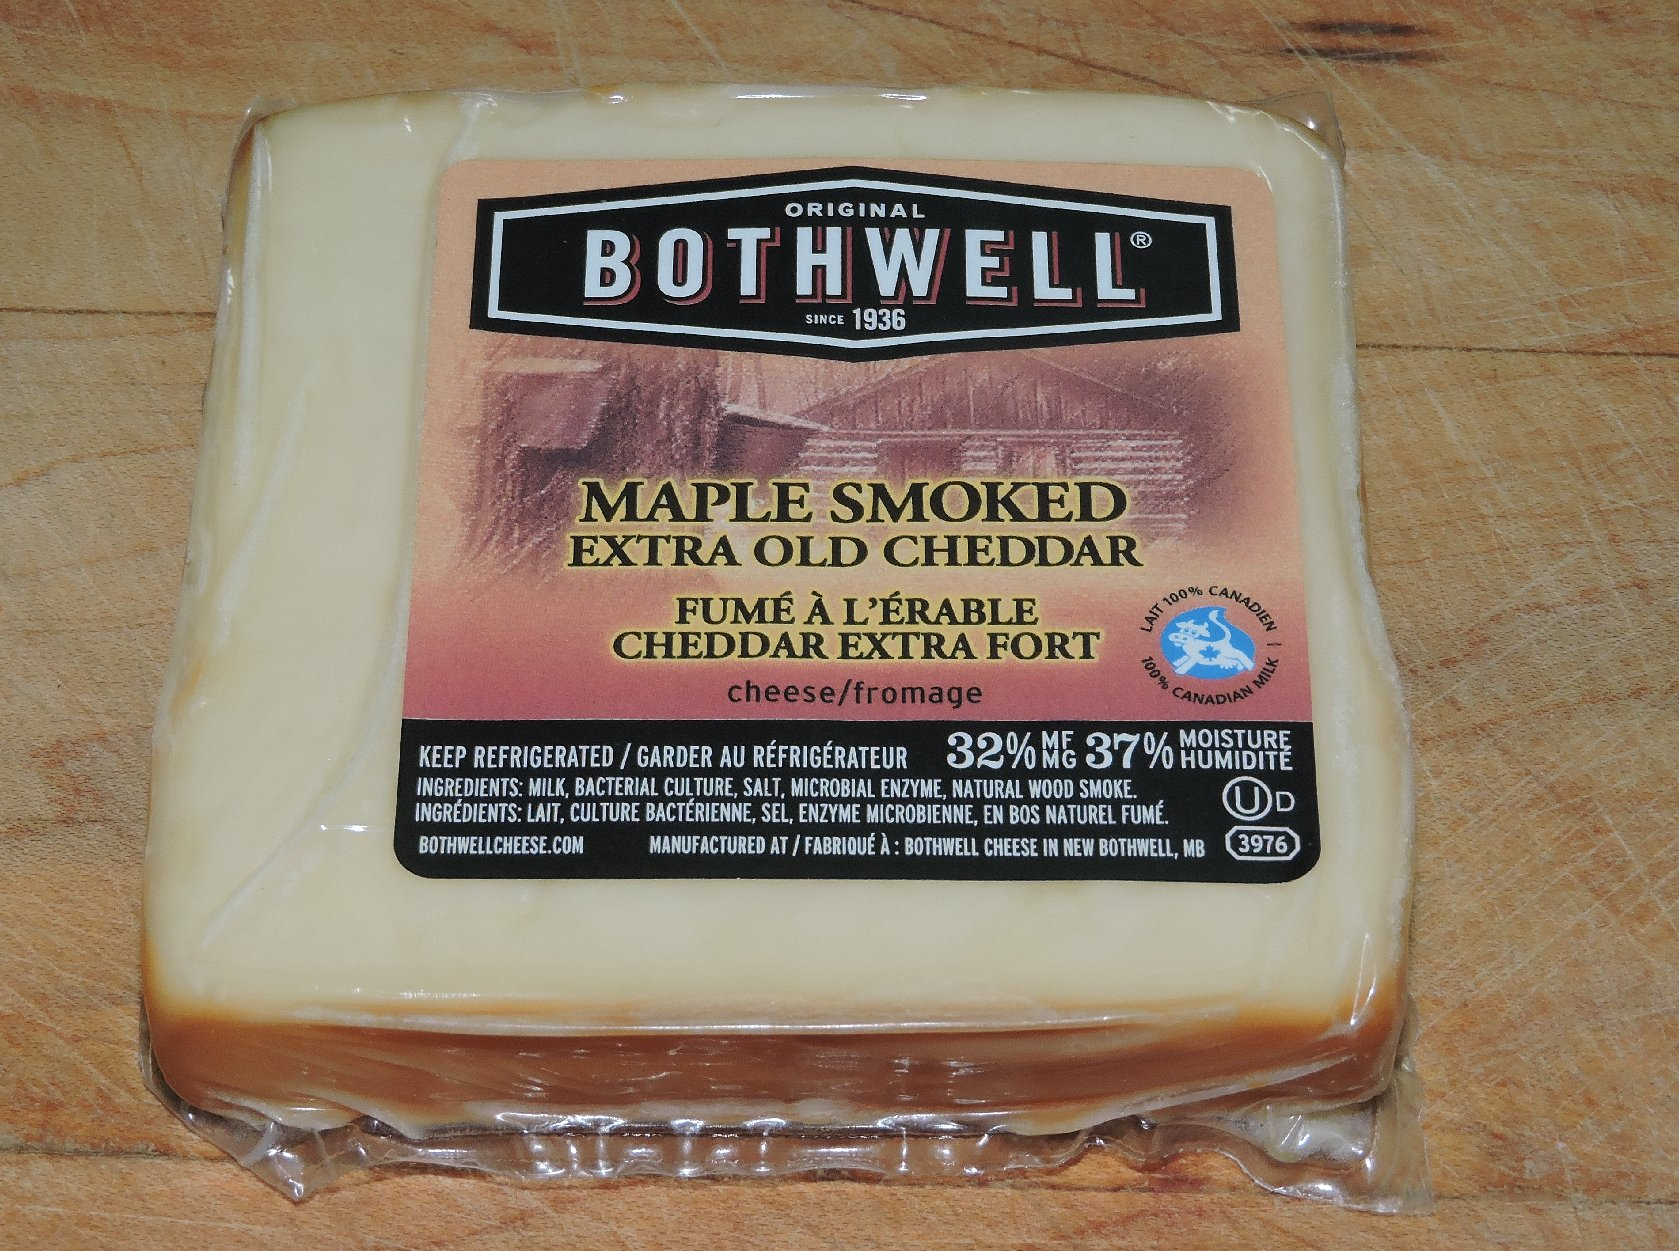 Bothwell Brand Maple Smoked Cheddar